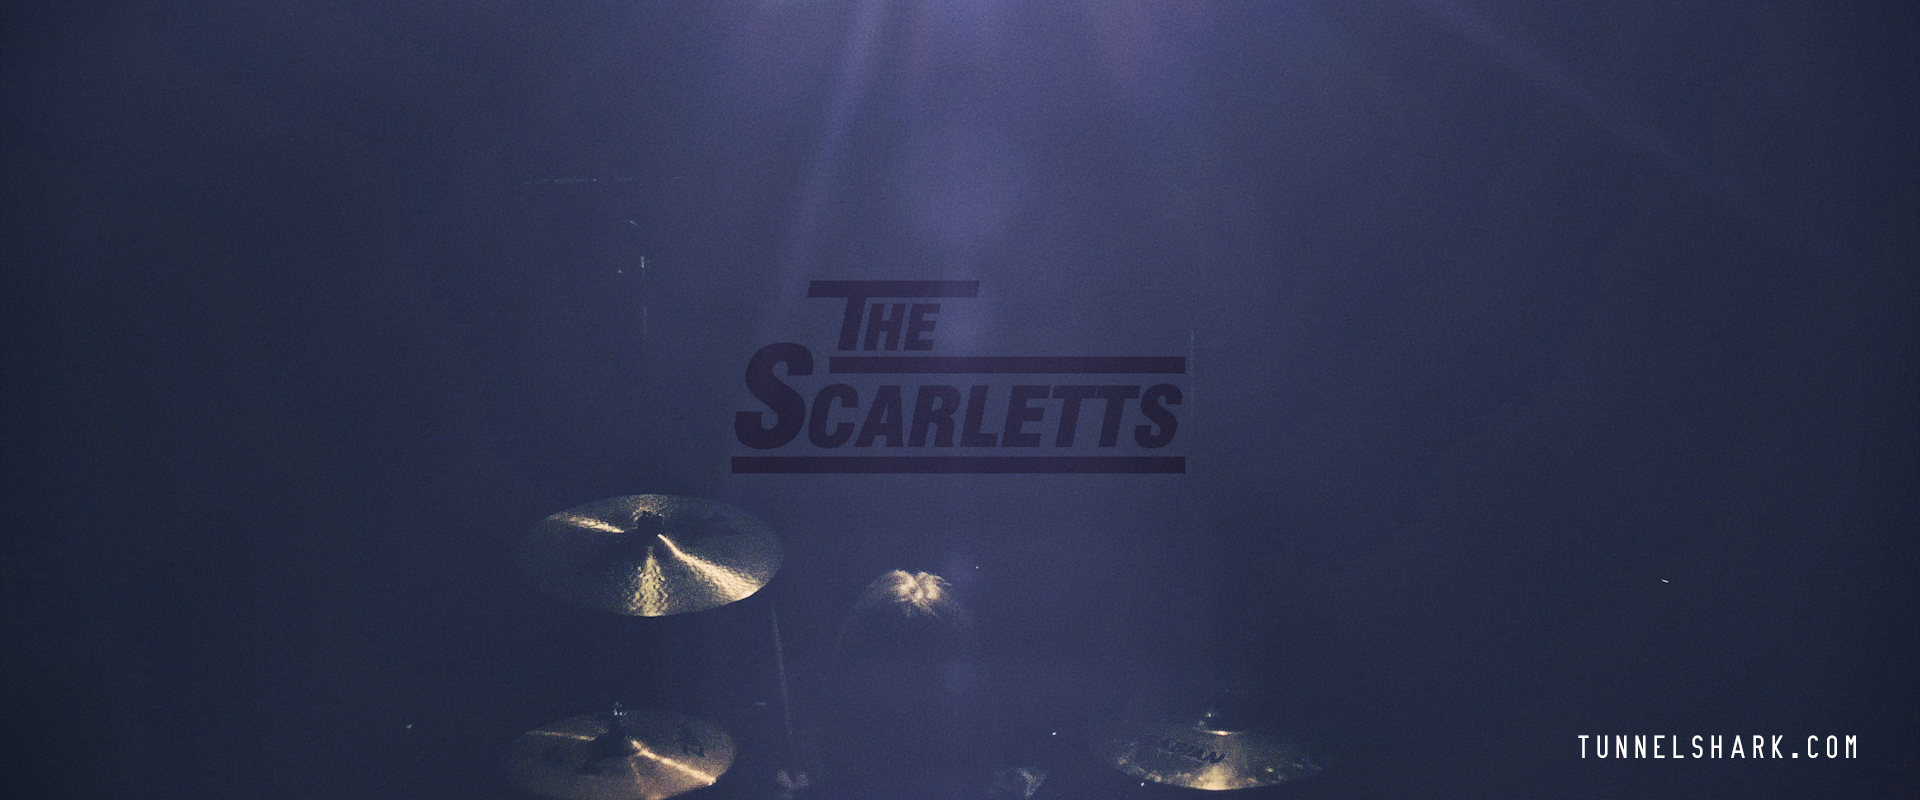 Southend, Band, Music Video, music video production, The Scarletts, Tunnel Shark Productions